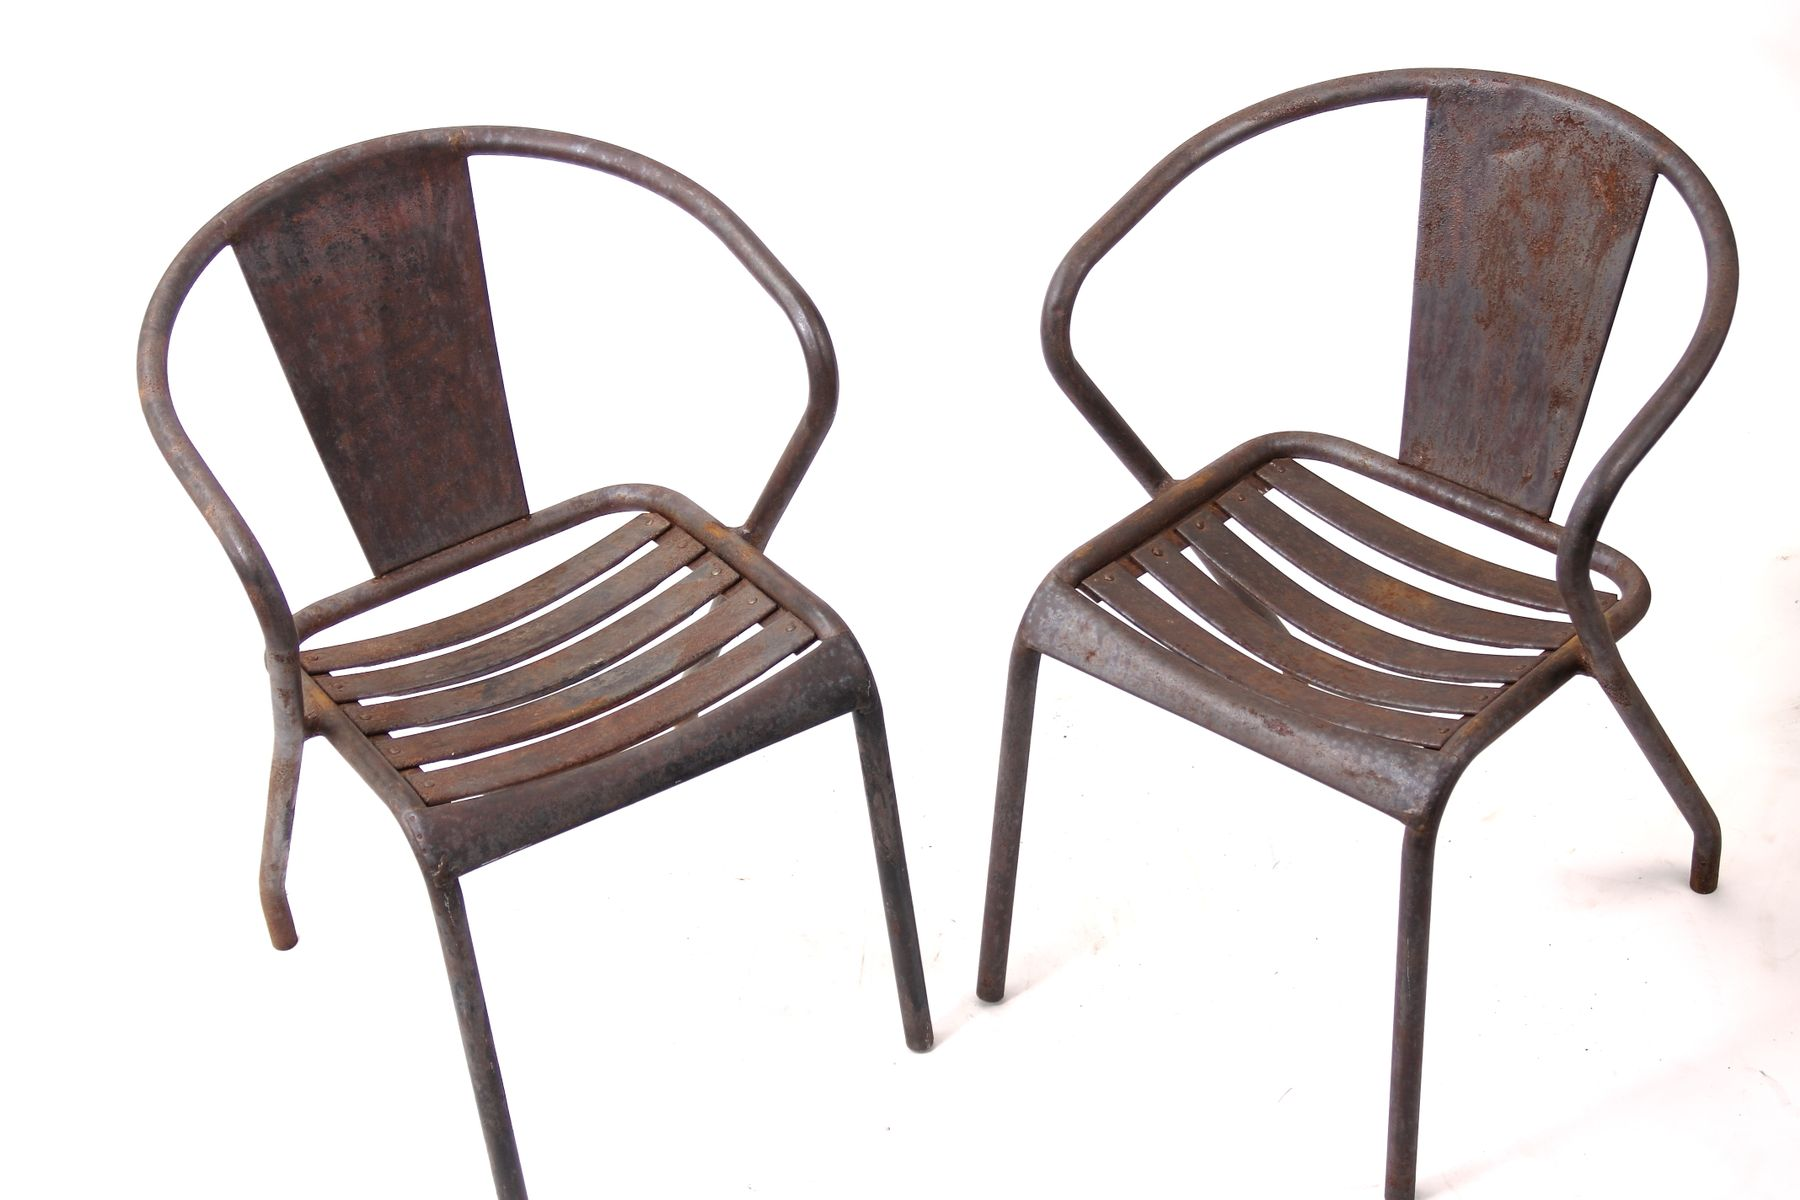 Vintage French FT5 Bistro Chairs by Xavier Pauchard for Tolix Set